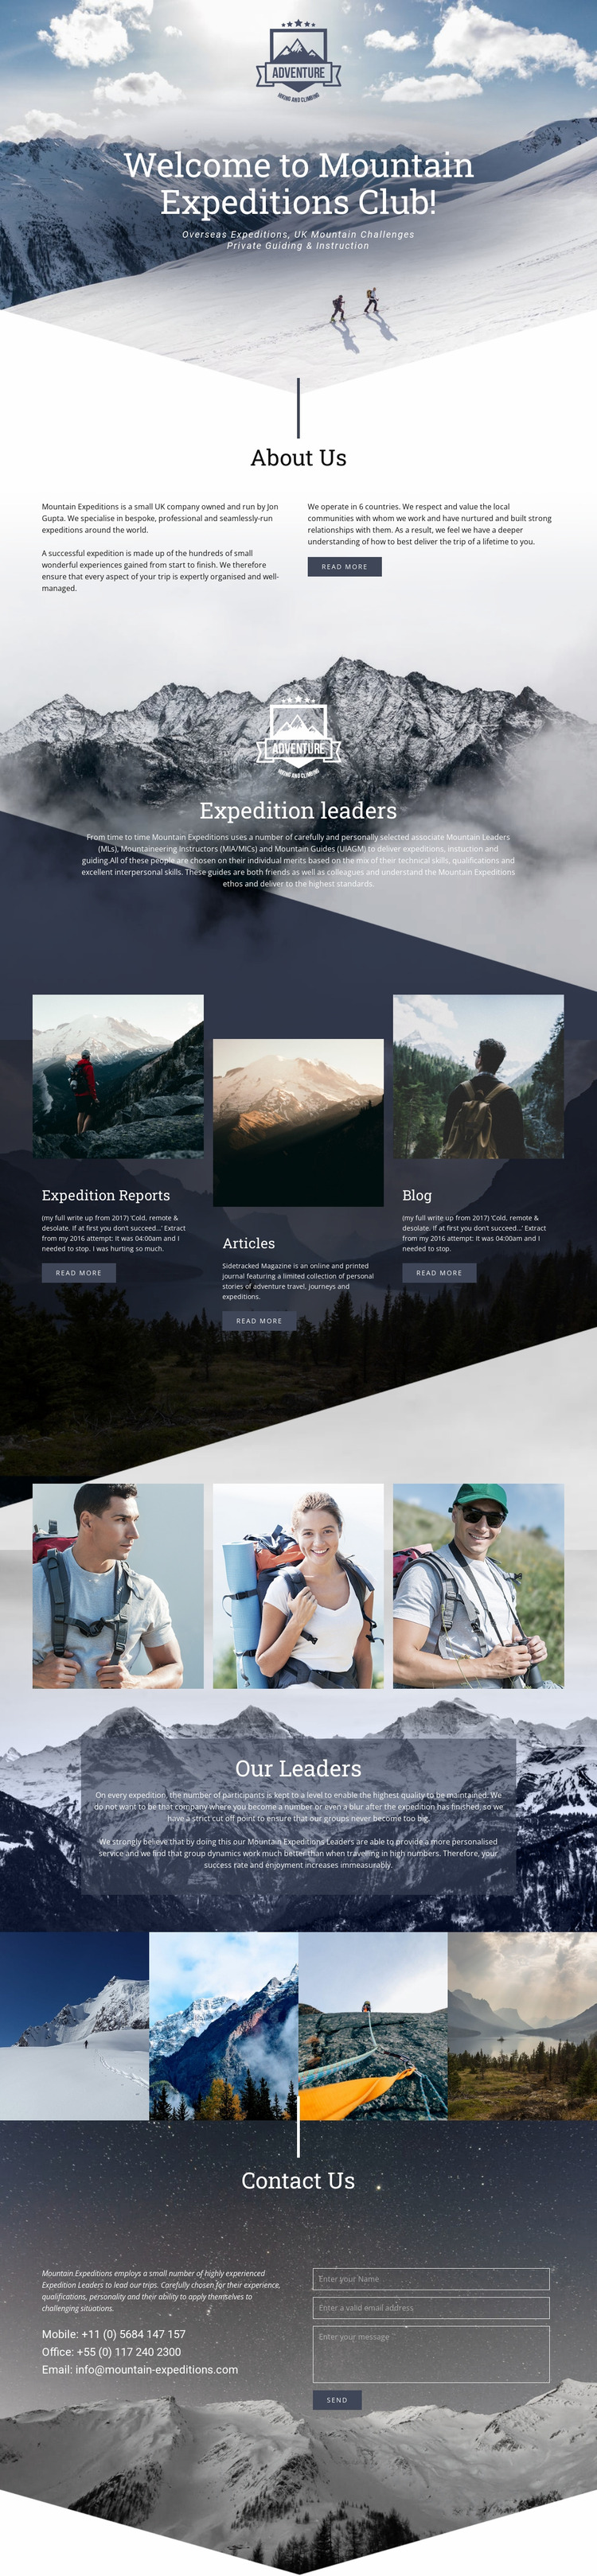 Extreme mountain expedition Website Mockup